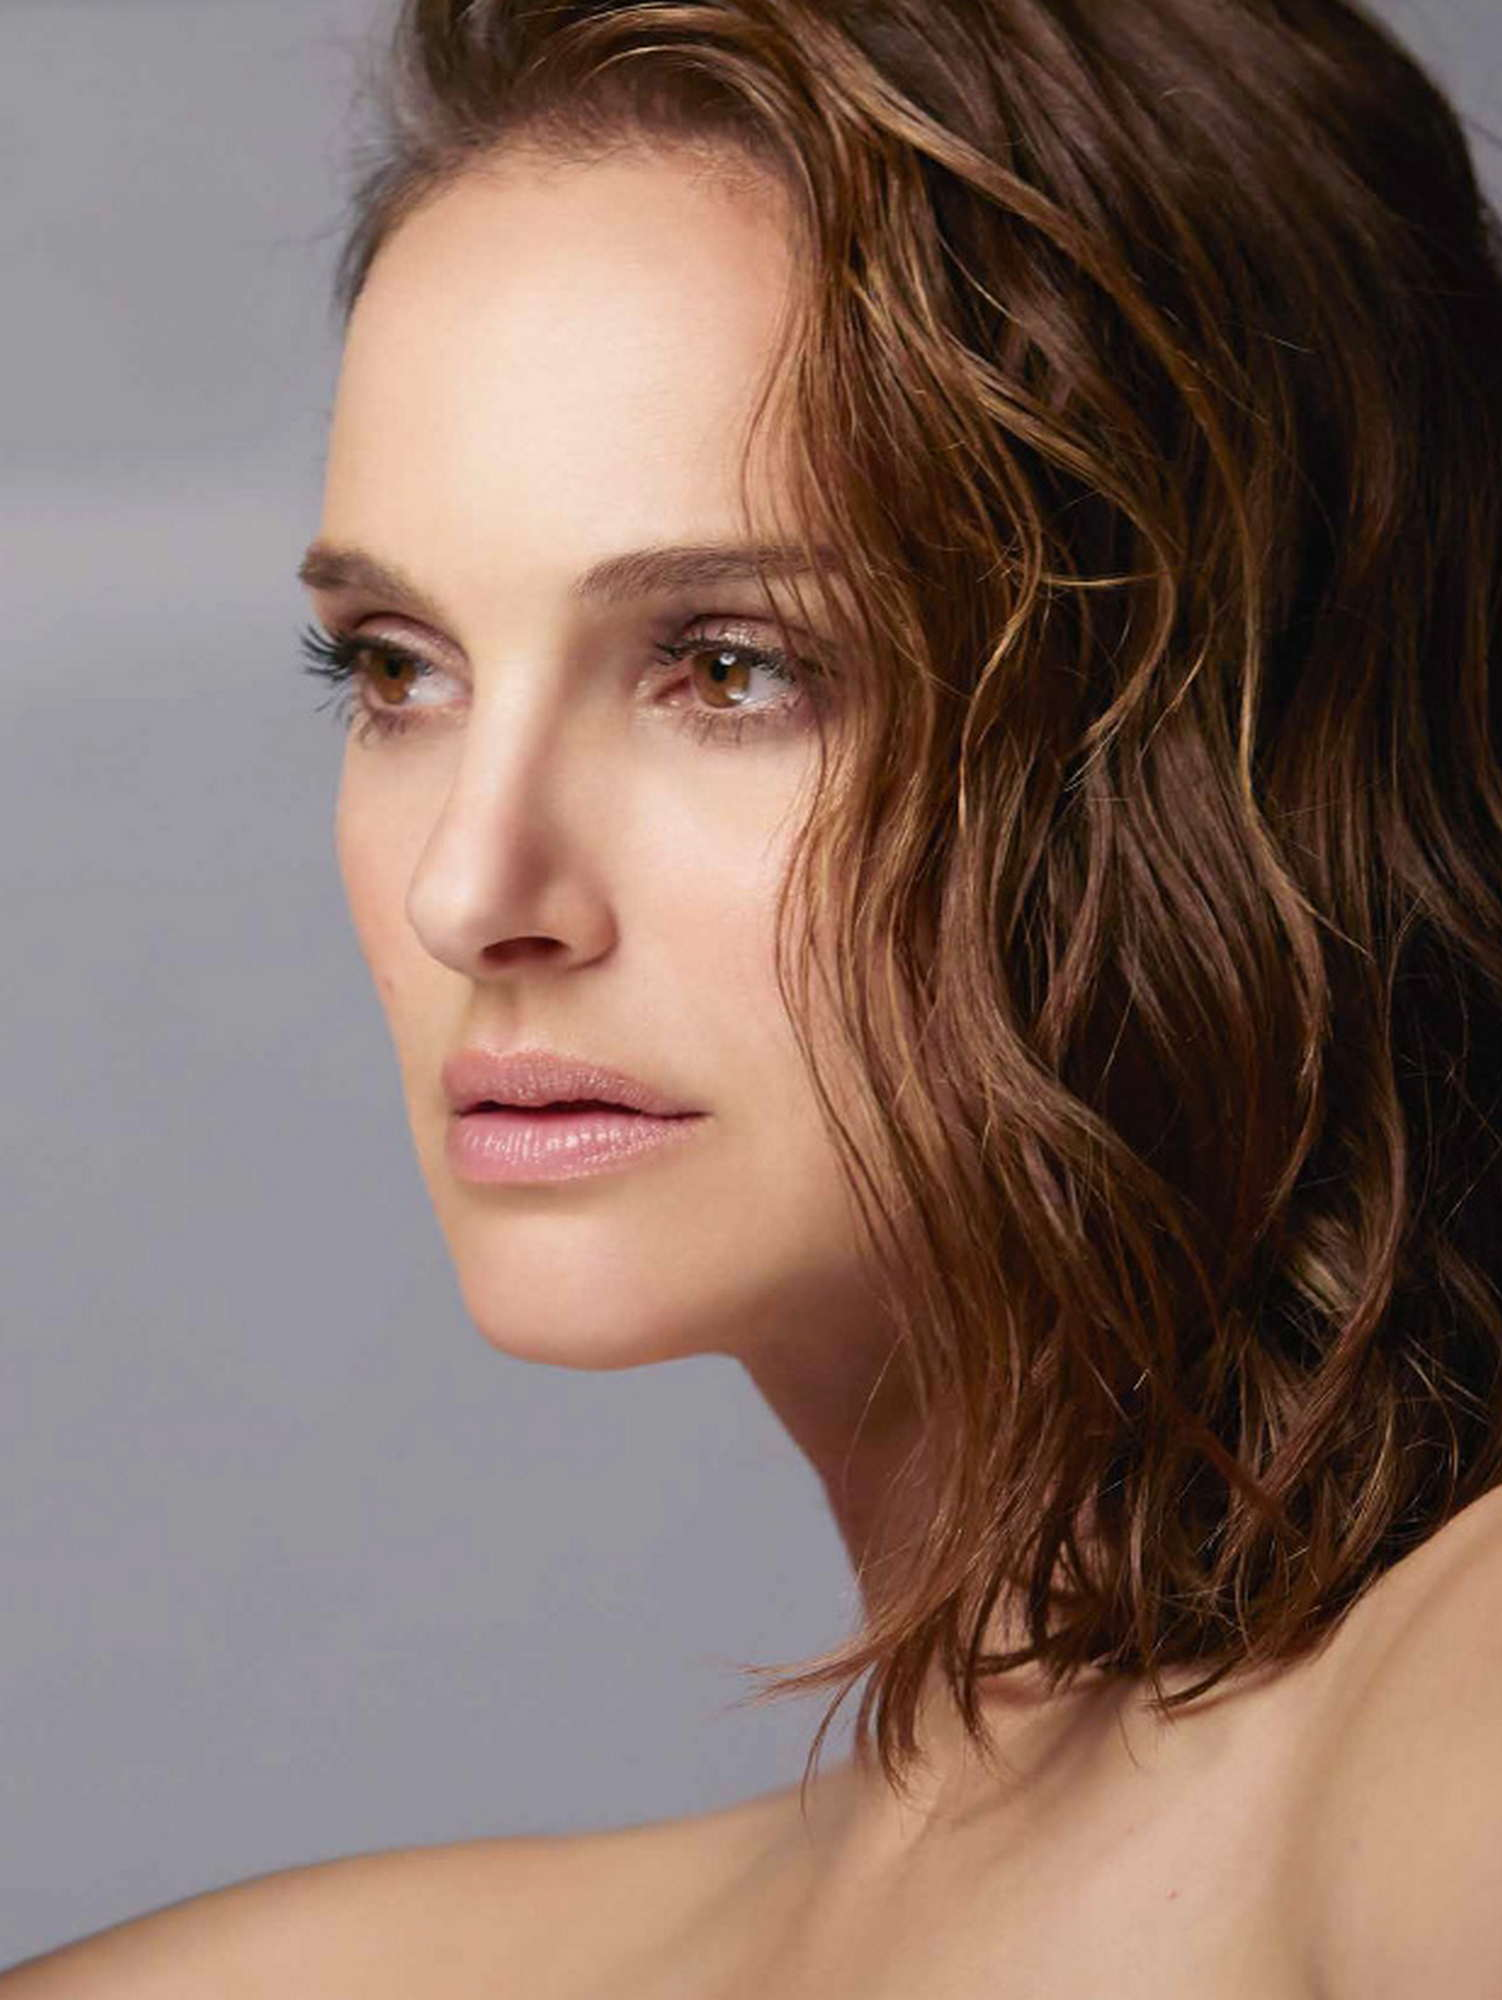 Natalie-Portman-David-Sims-for-Diors-Diorskin-Forever-Campaign-20194